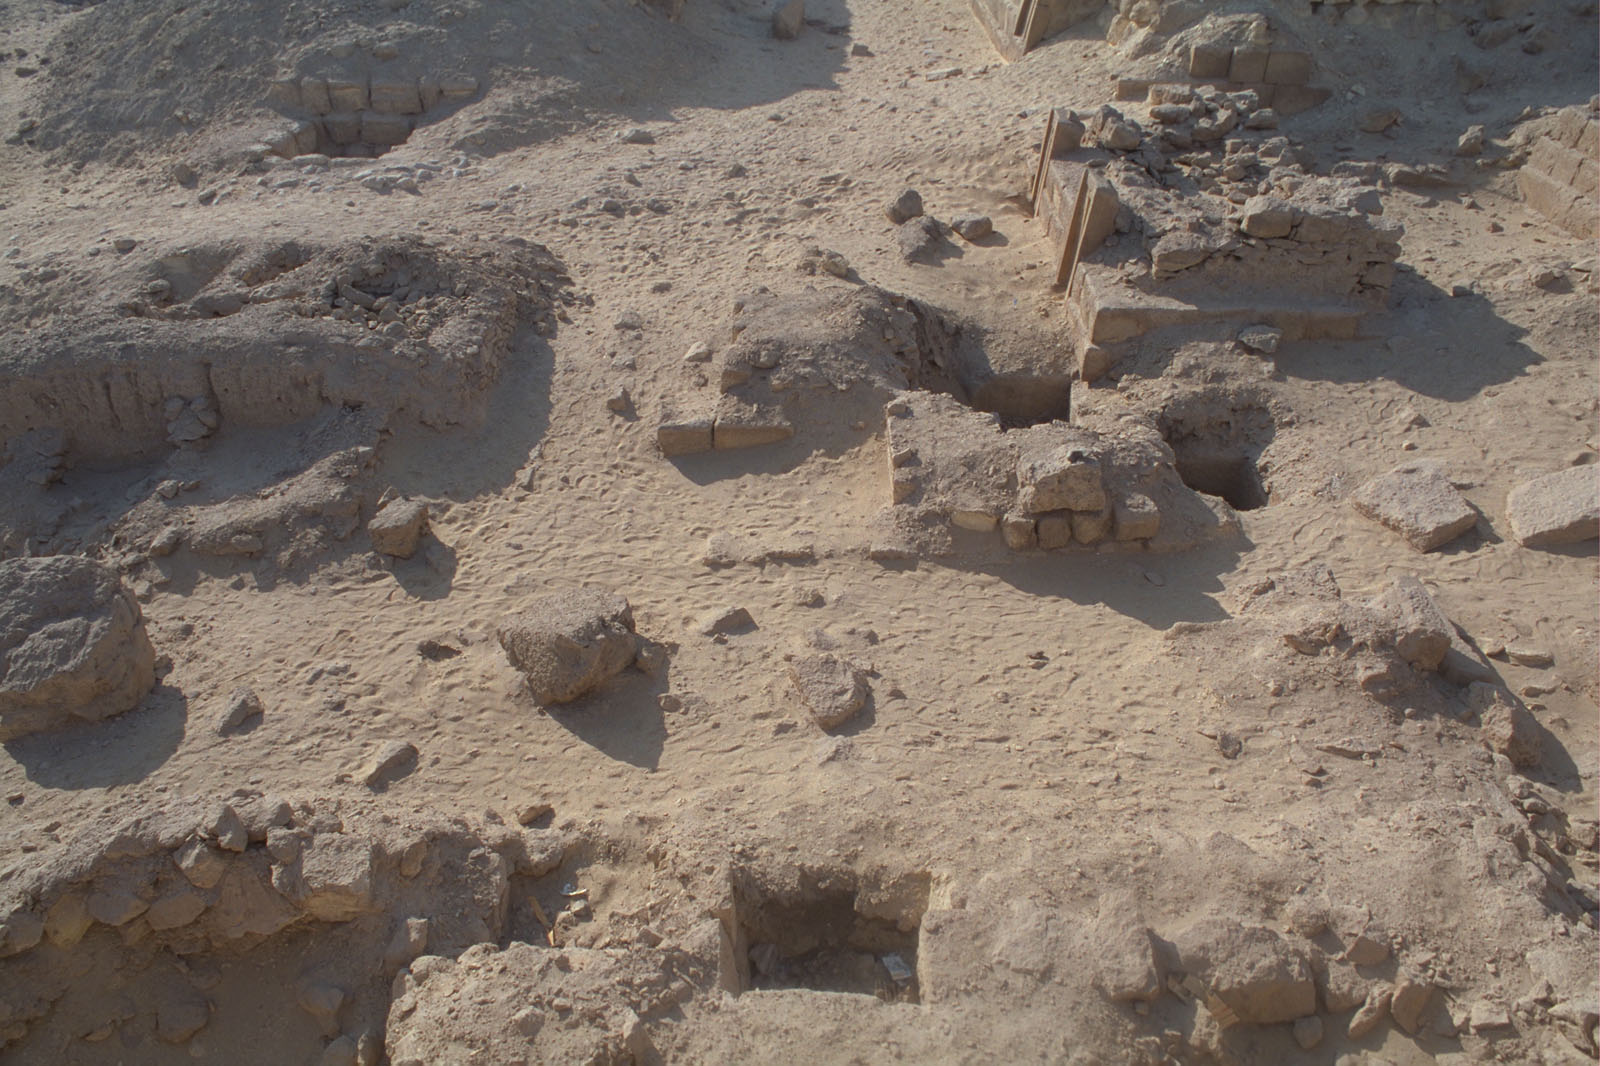 Western Cemetery: Site: Giza; View: G 2156', G 2139, G 2154, G 2154a, G 2153, G 2152, G 2151, G 2136', G 2157